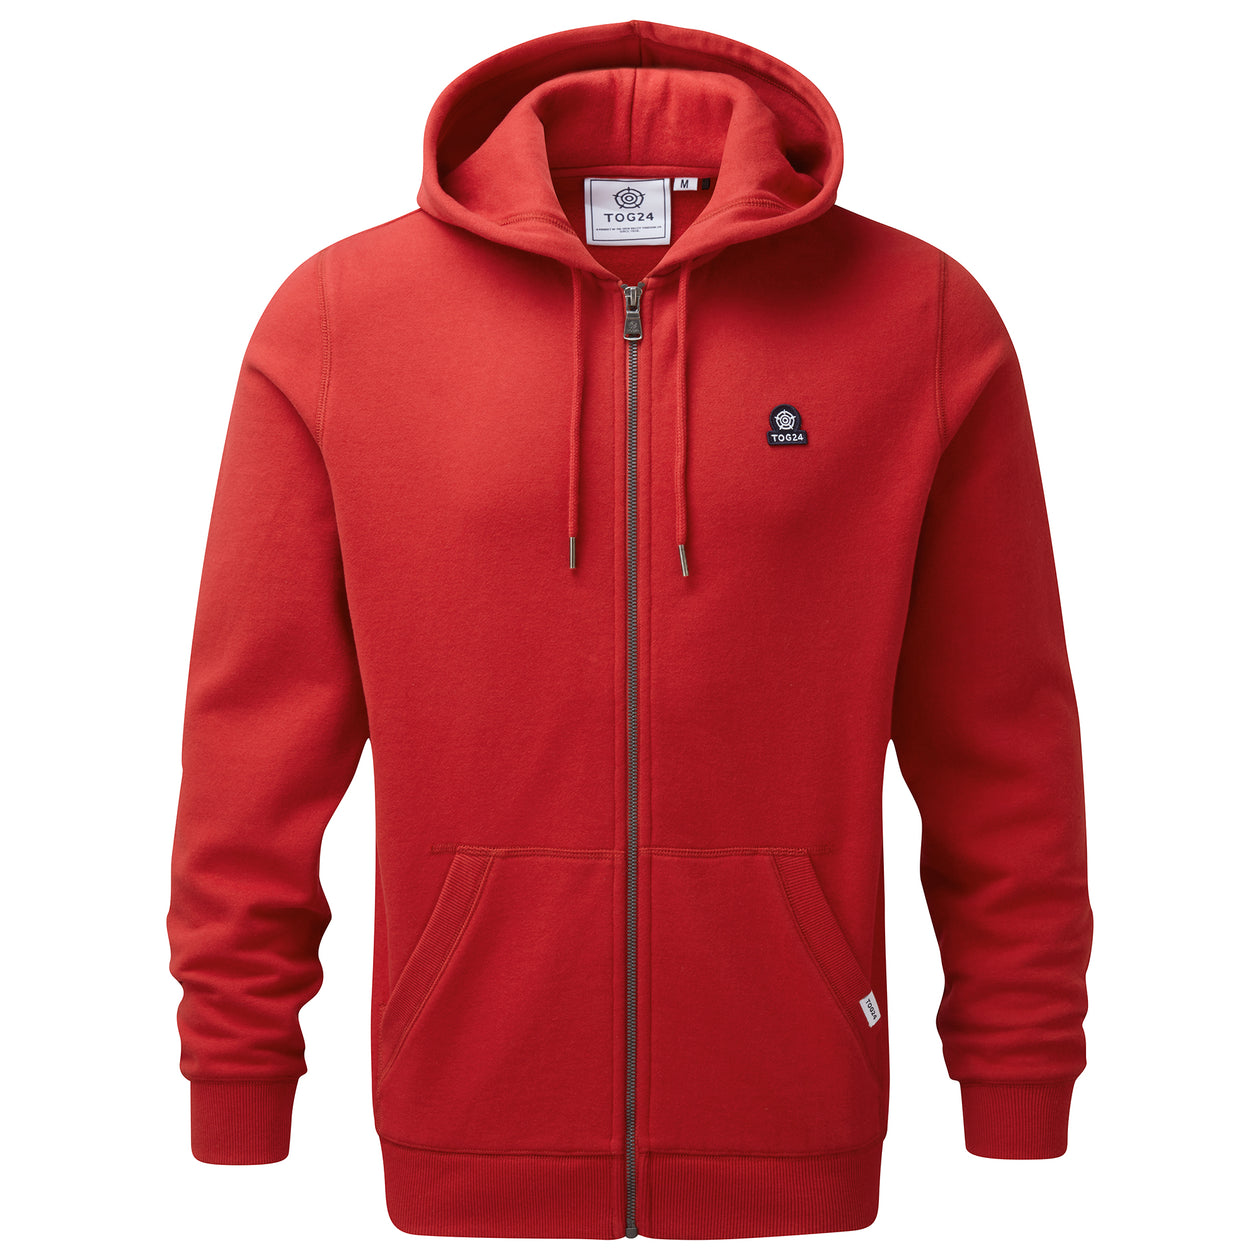 Alden Mens Hoody - Chilli Red image 4